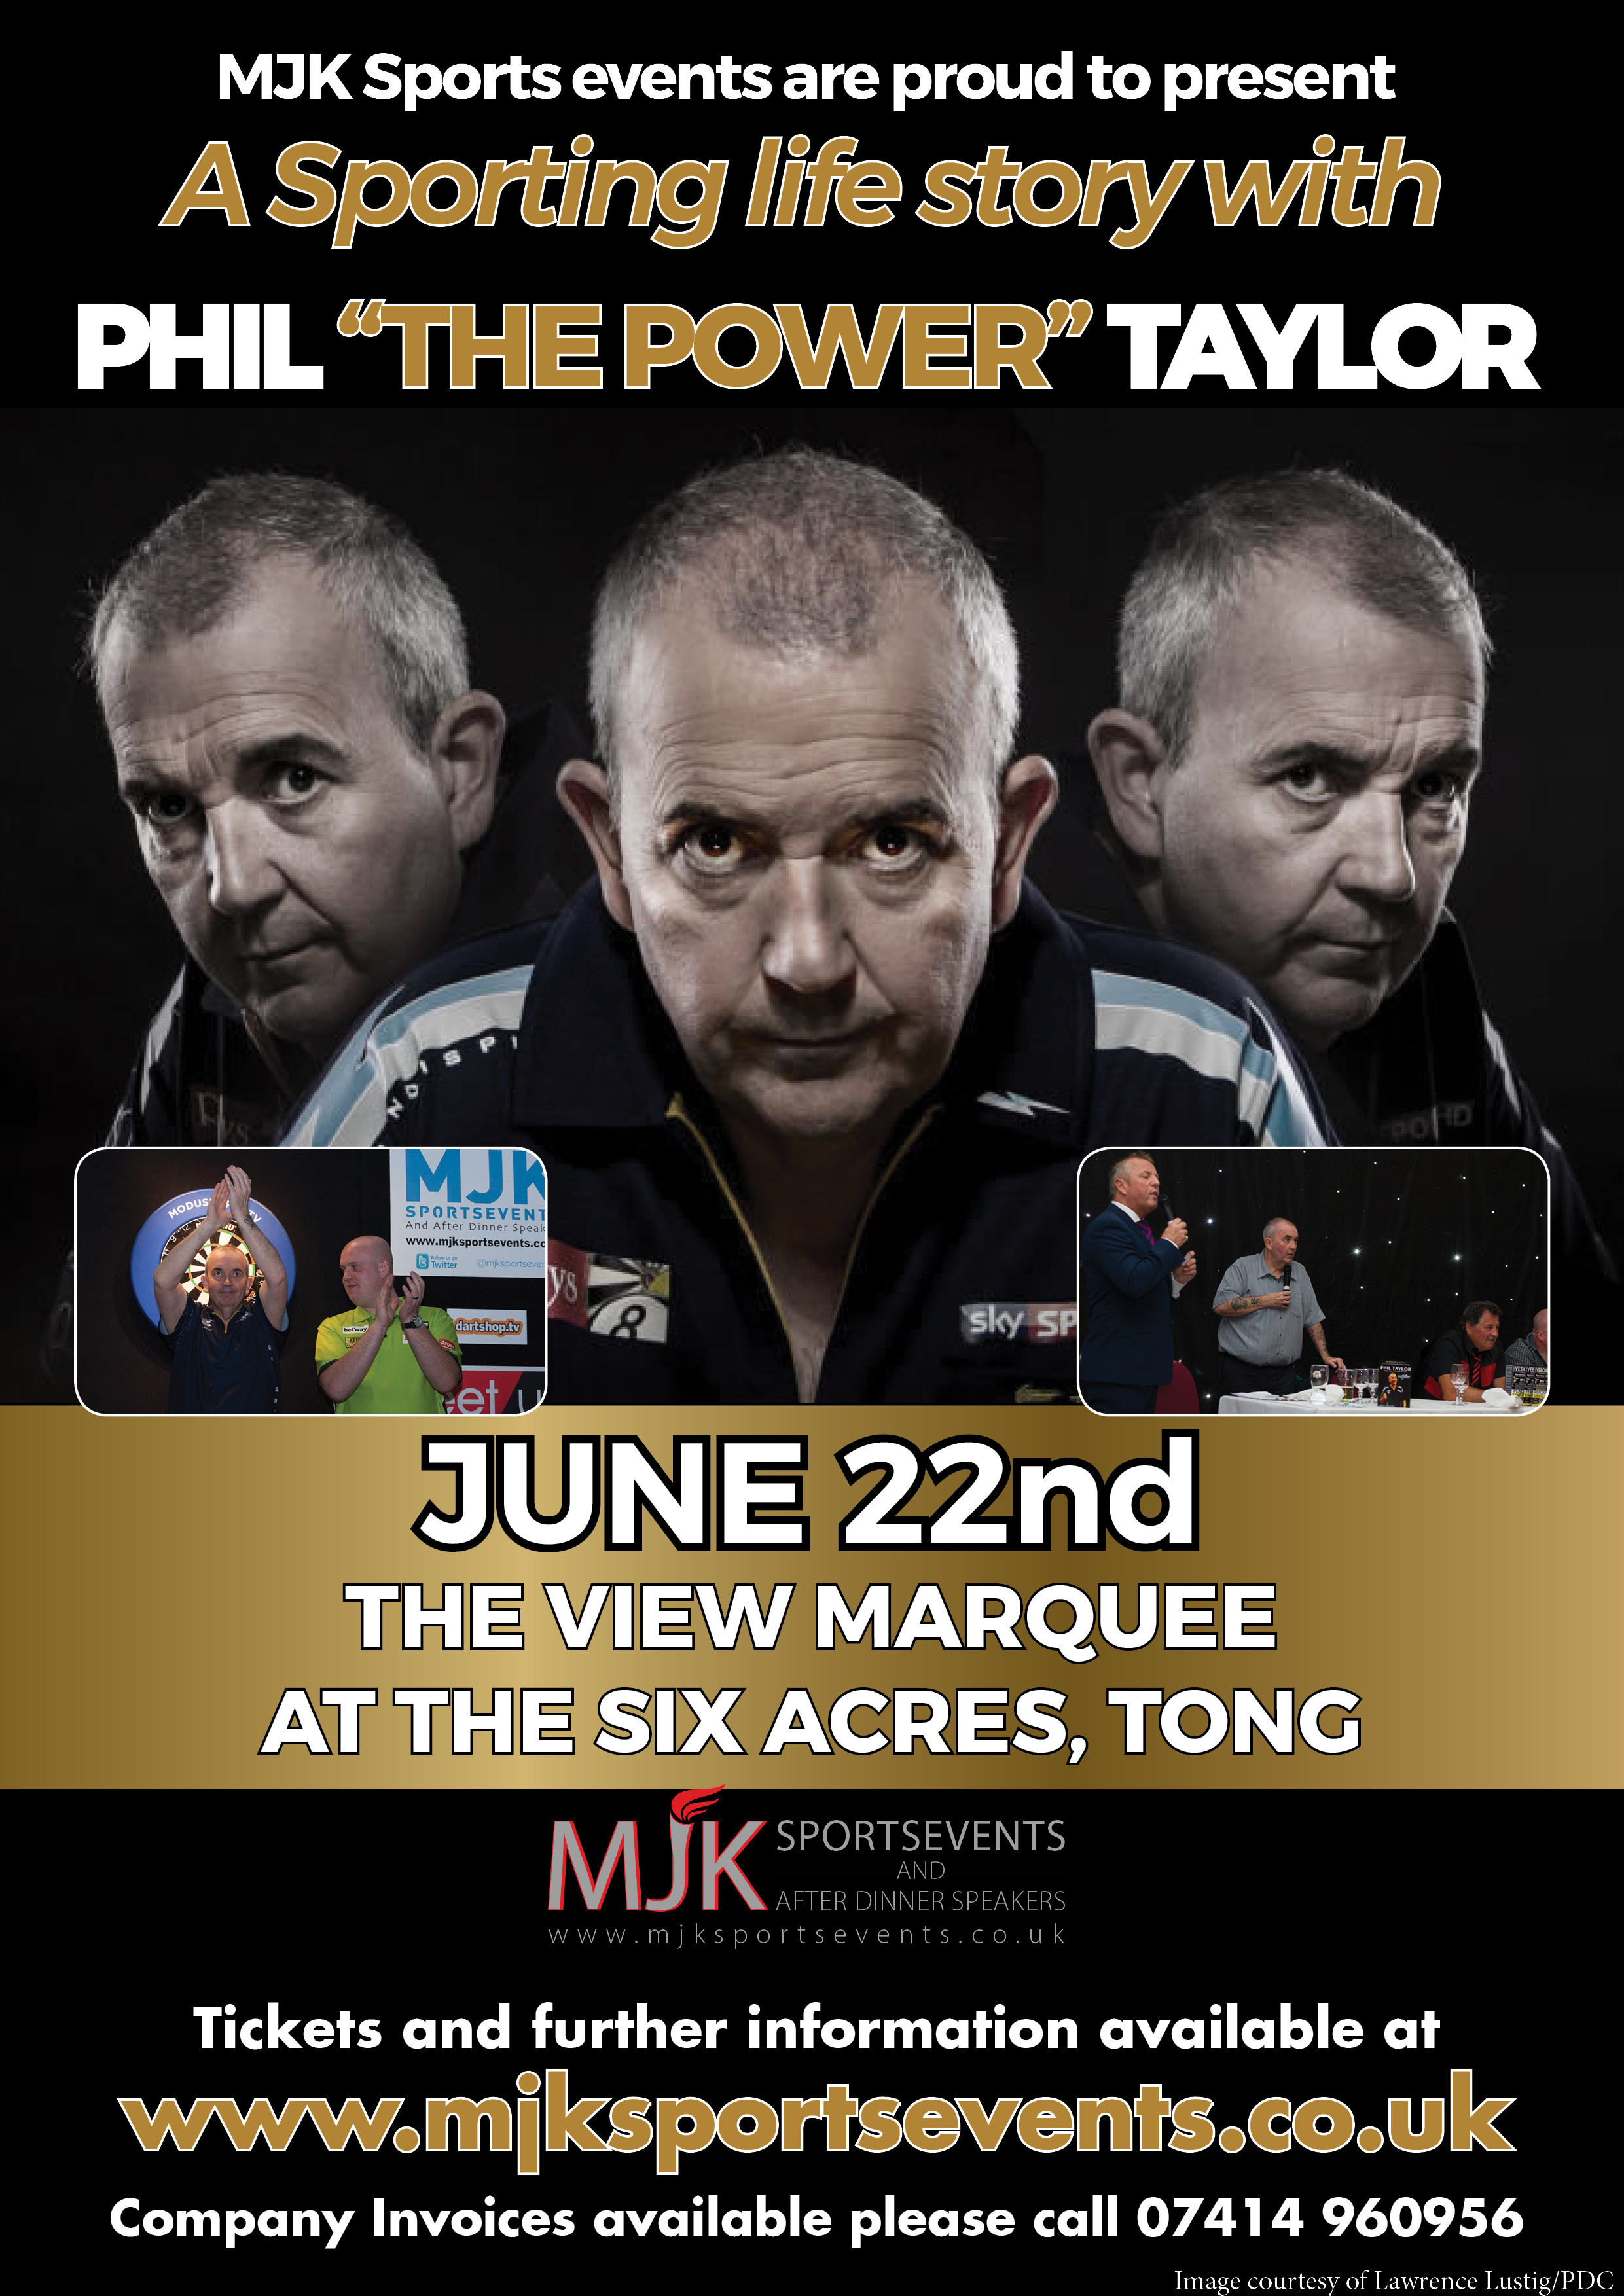 Phil Taylor Sporting Life Story